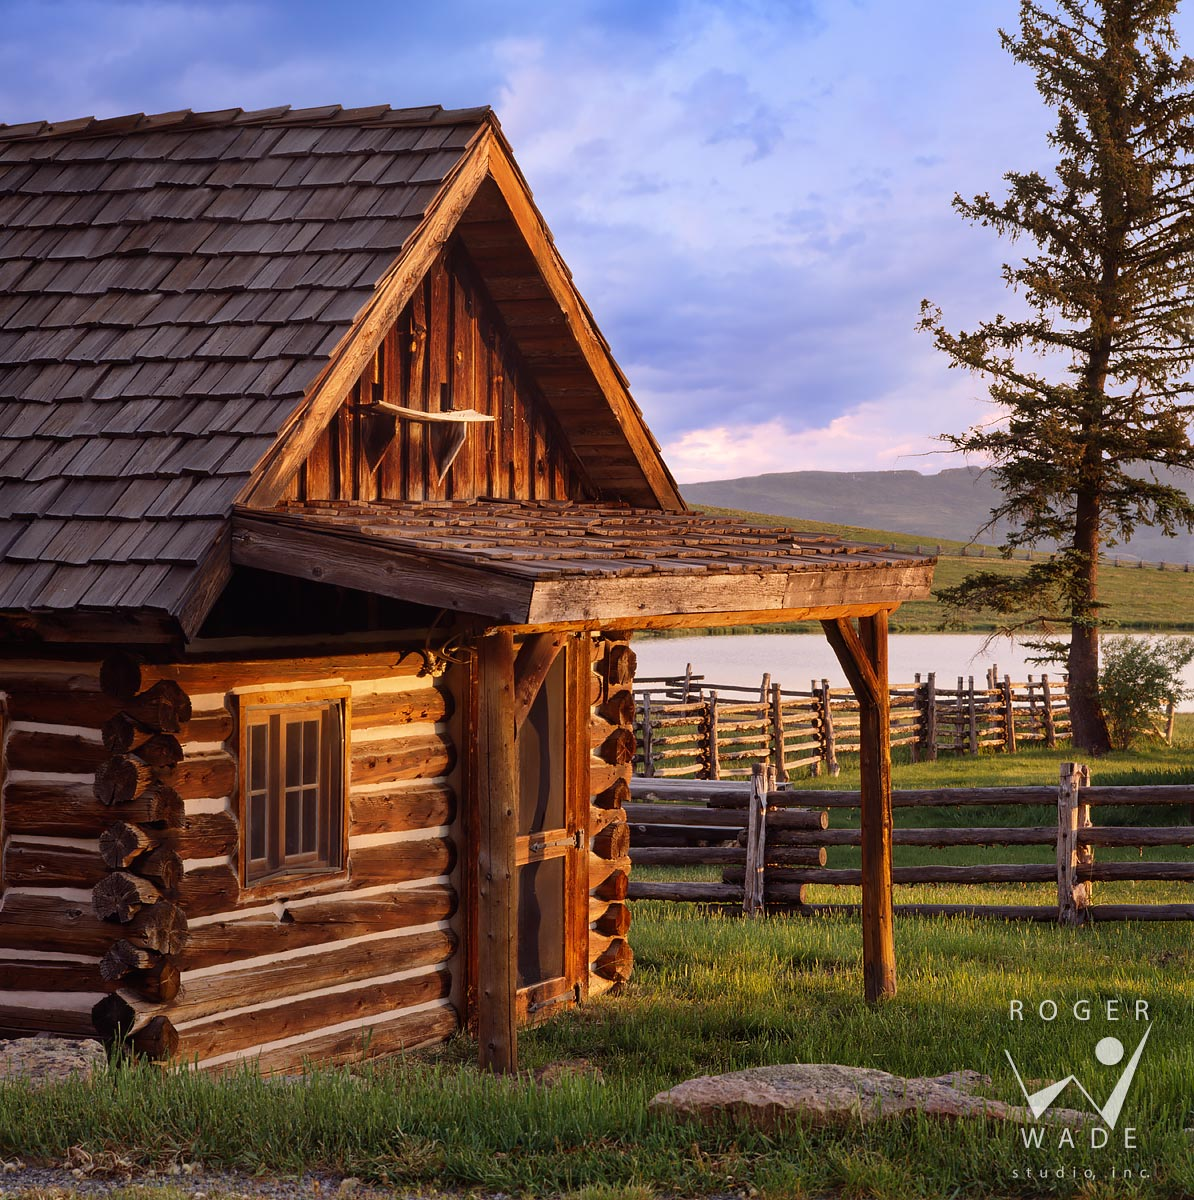 roger wade studio architectural photography of rustic cabin bunk house at twilight, private ranch, ridgway, colorado, photographed for double shoe cattle company